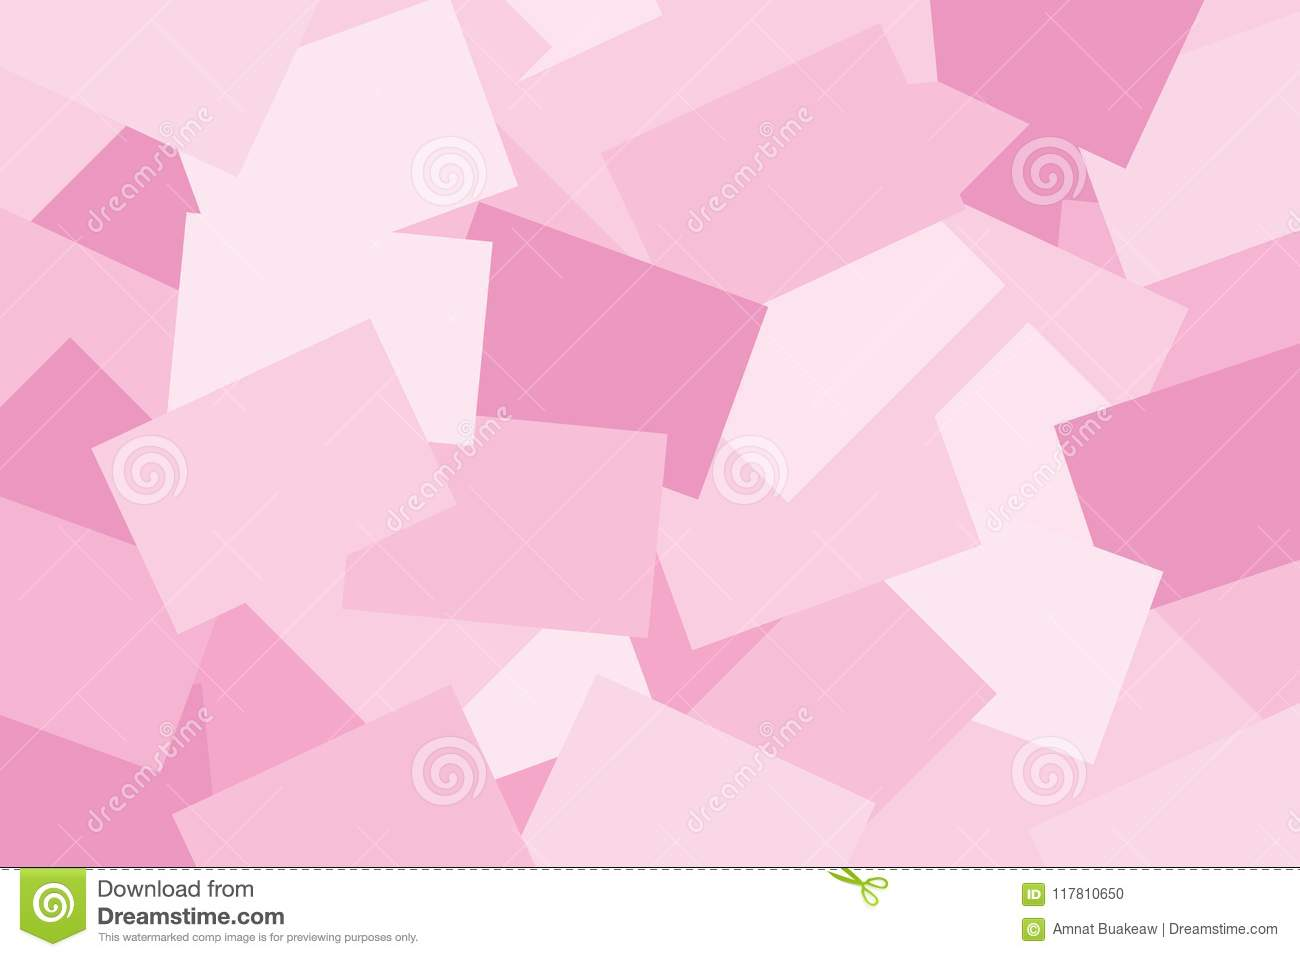 Abstract Paper Pink Pastel Colorful Geometric Flat Lay Style